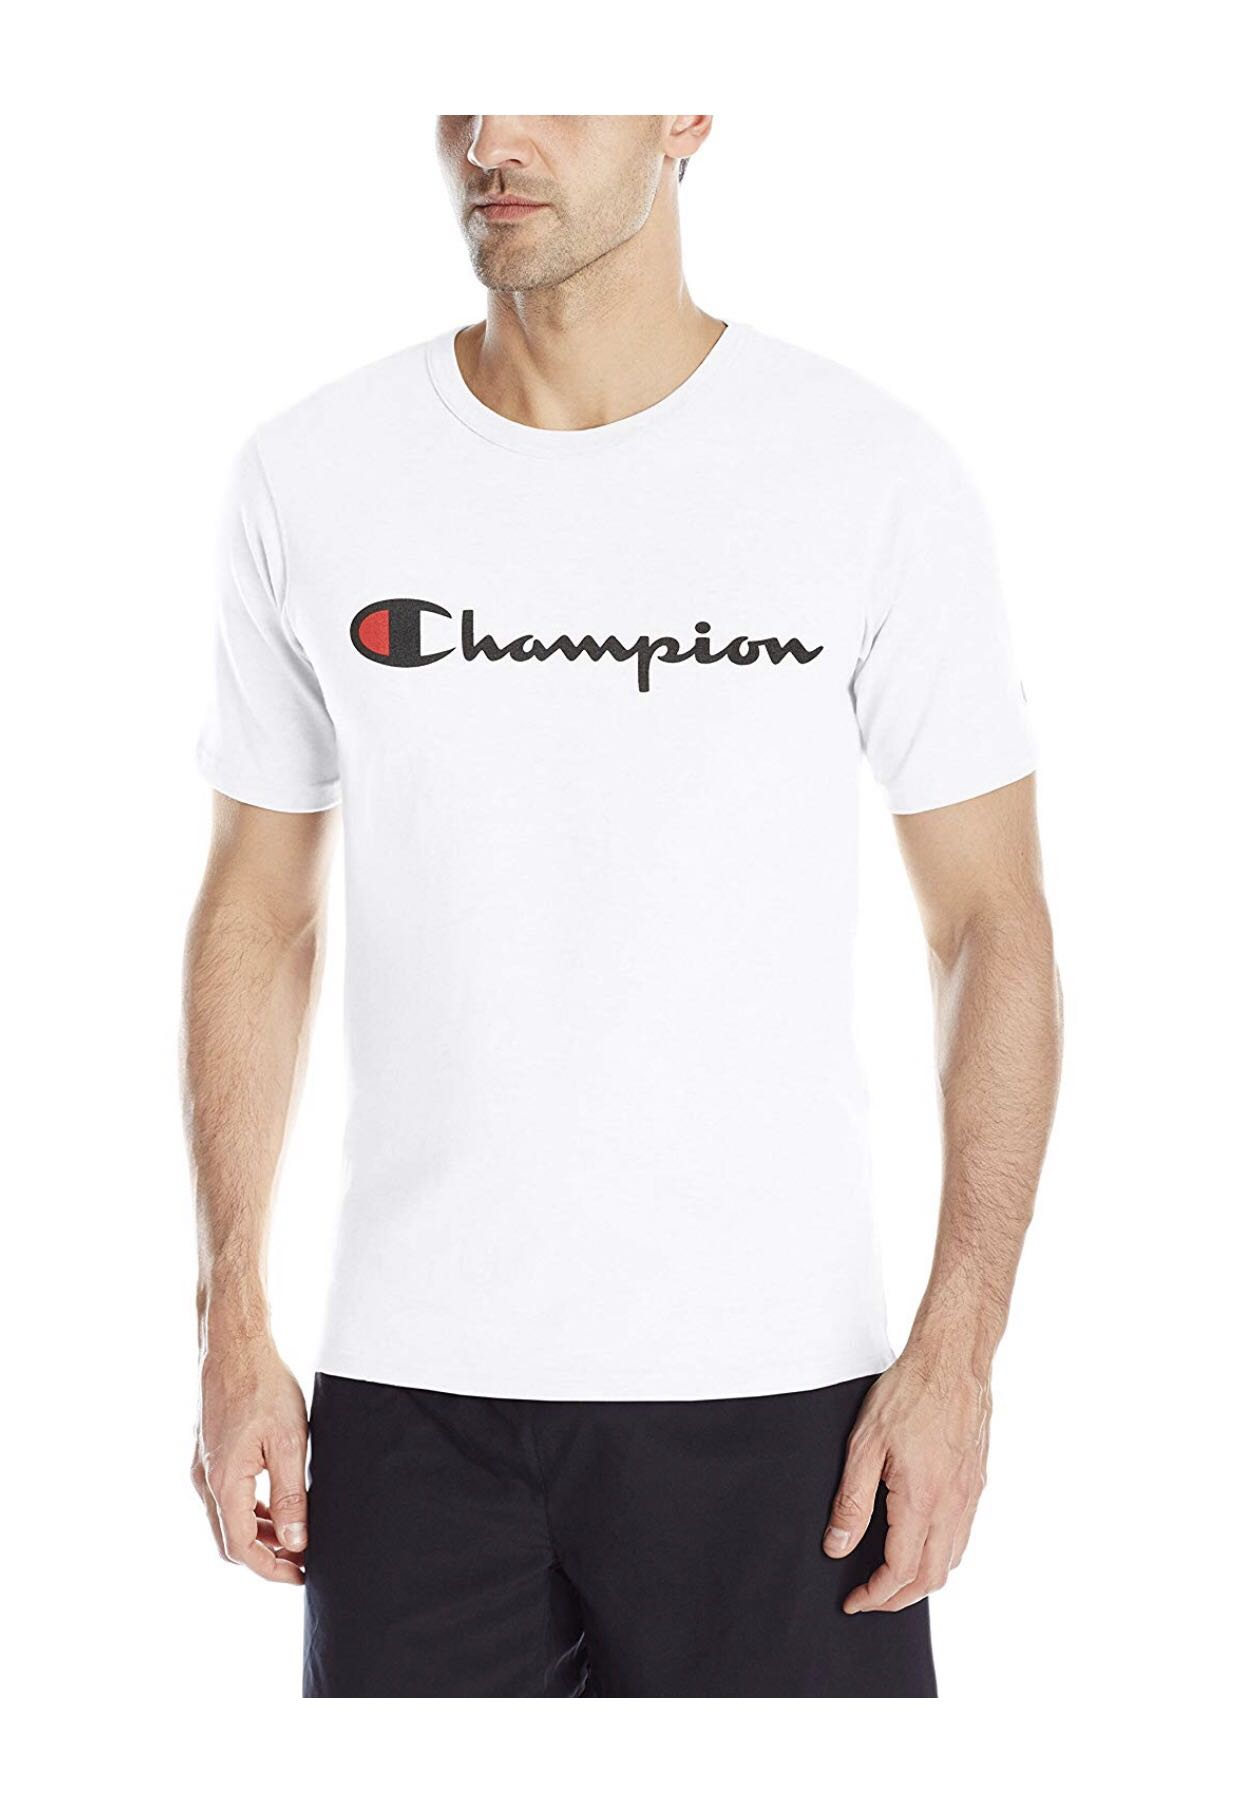 bf059a998 Champion LIFE Men's Heritage Tee, Men's Fashion, Clothes, Tops on ...